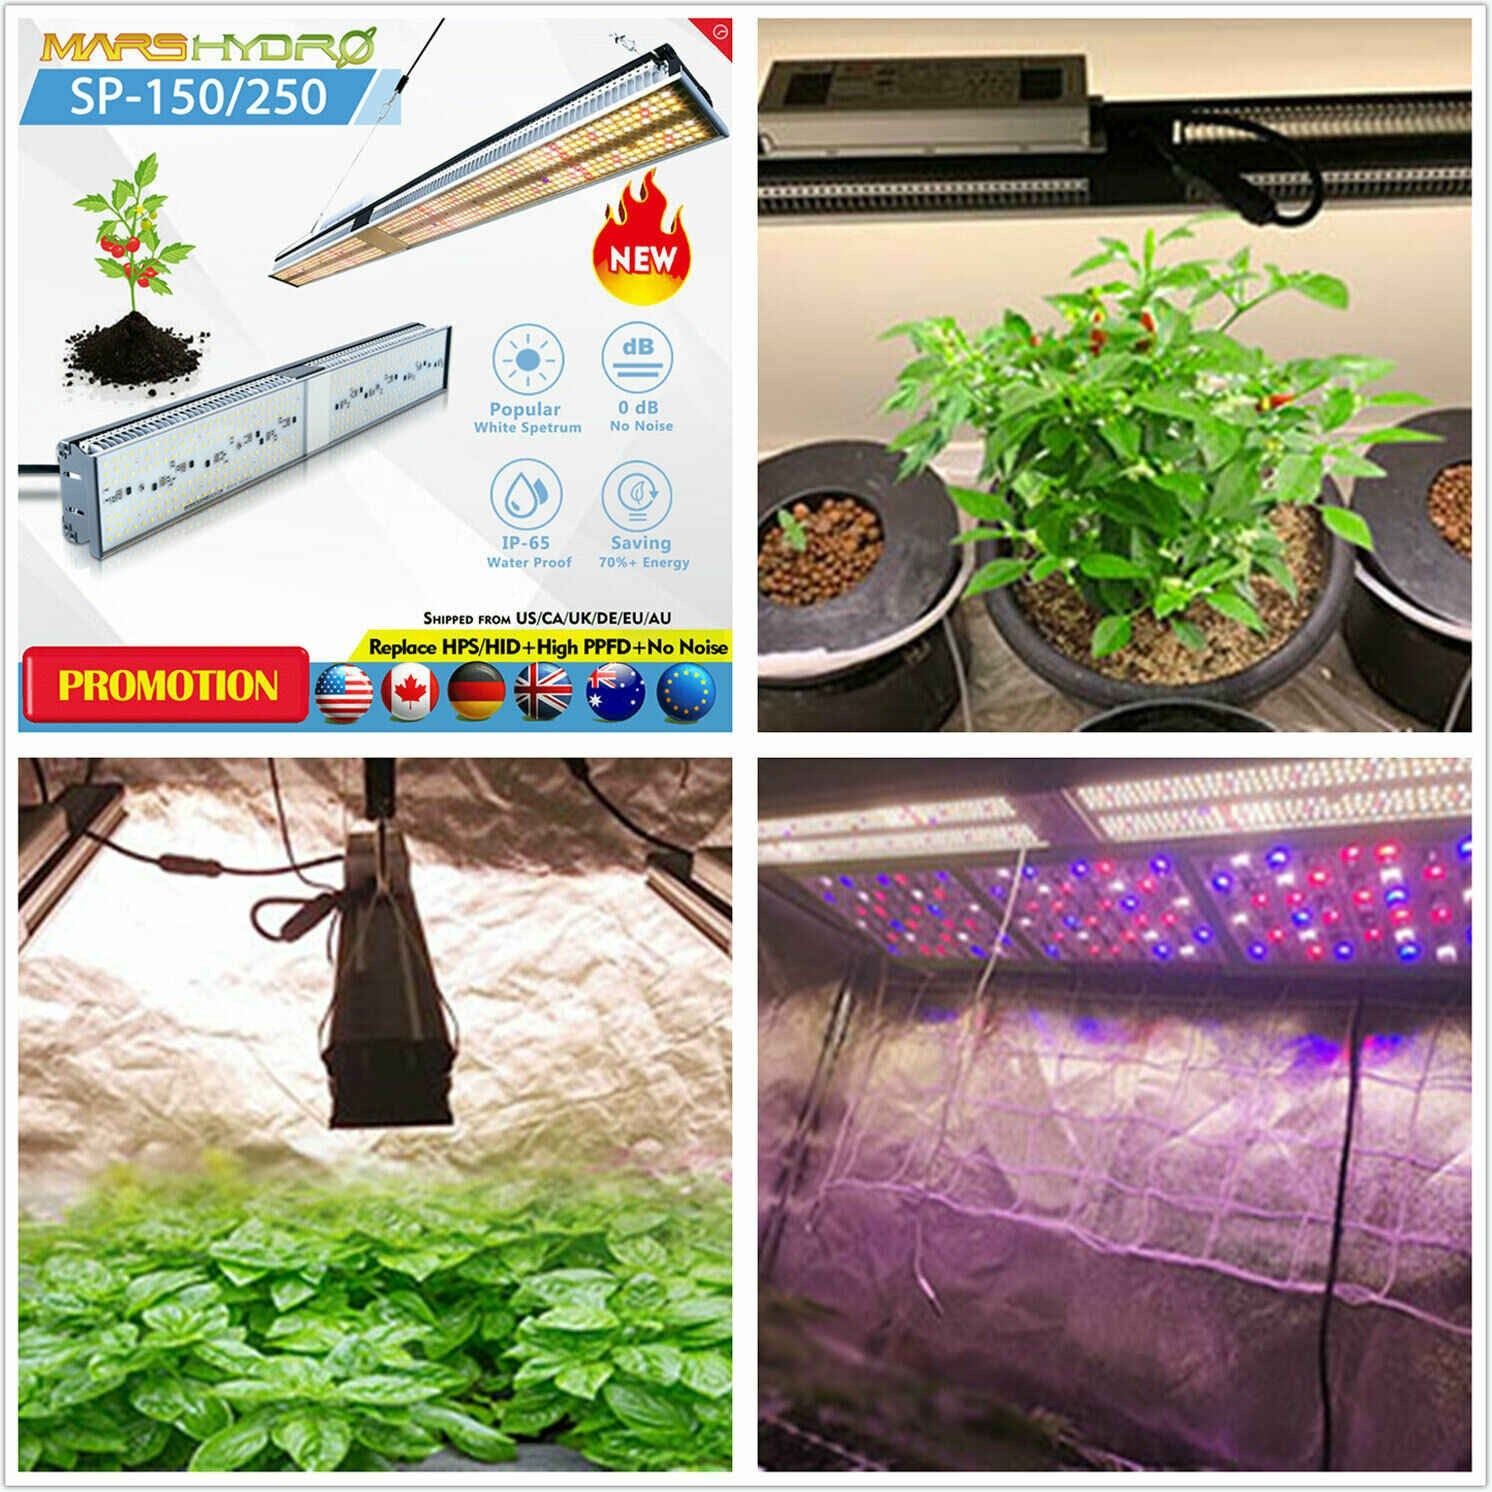 Beautiful Grow Lights For Bonsai Tree Images Bonsai Gallery Bonsai Tree Grow Lights Bonsai